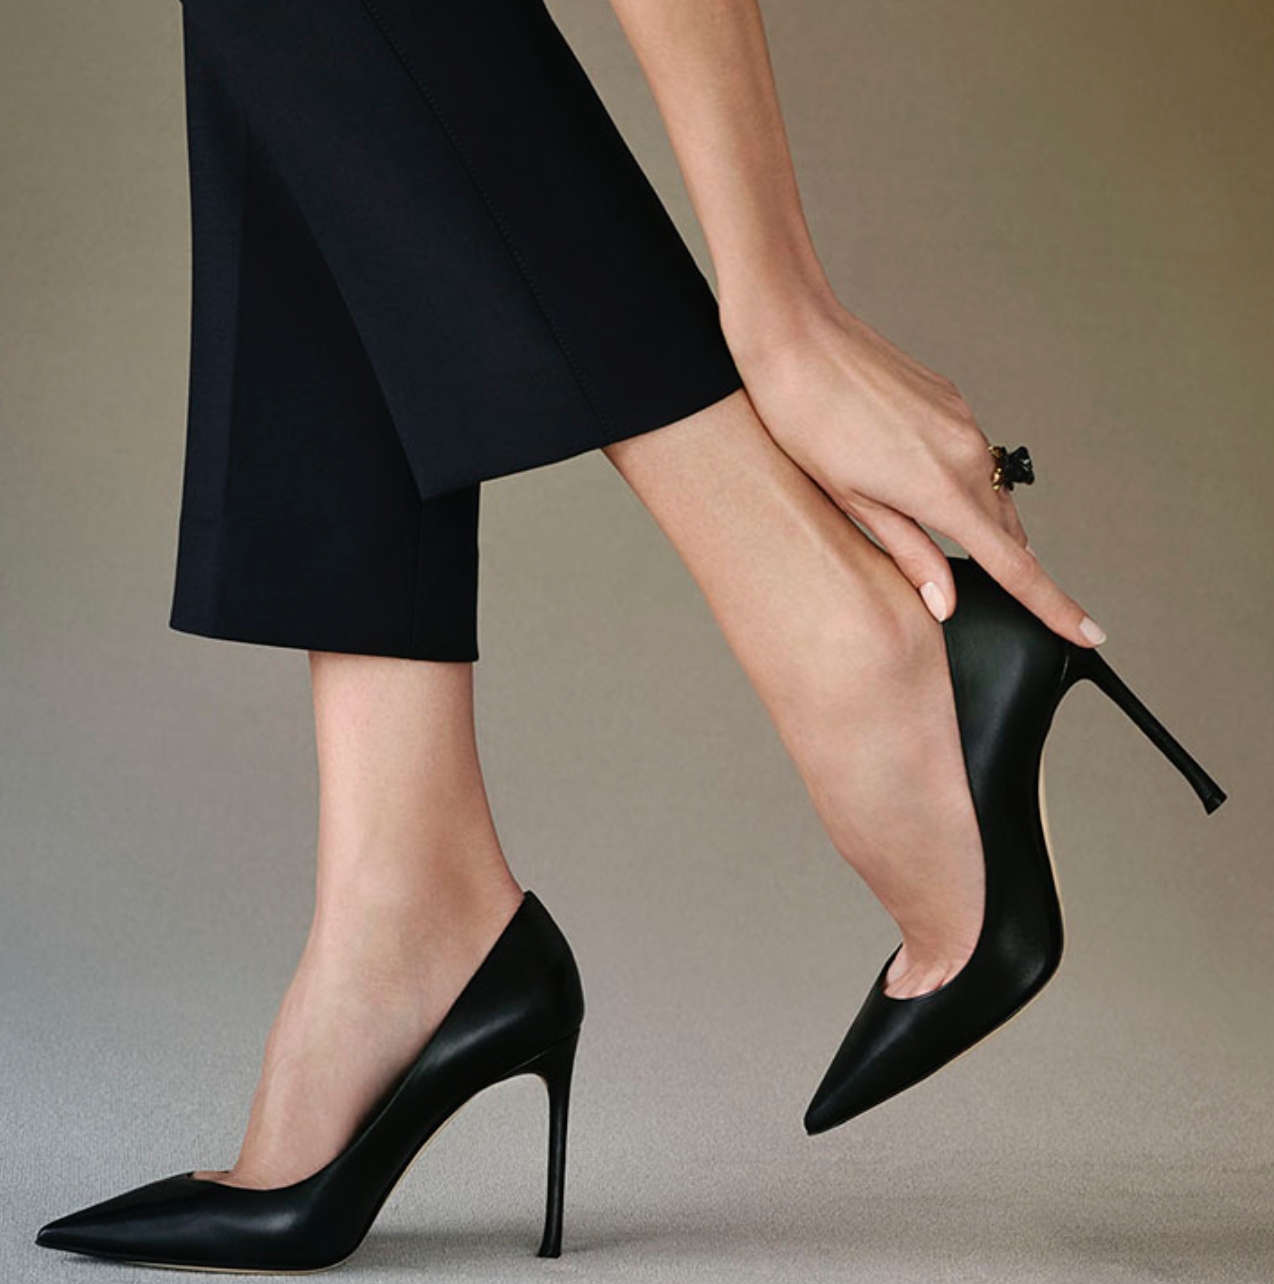 Dior Introduces The Dioressence Stiletto